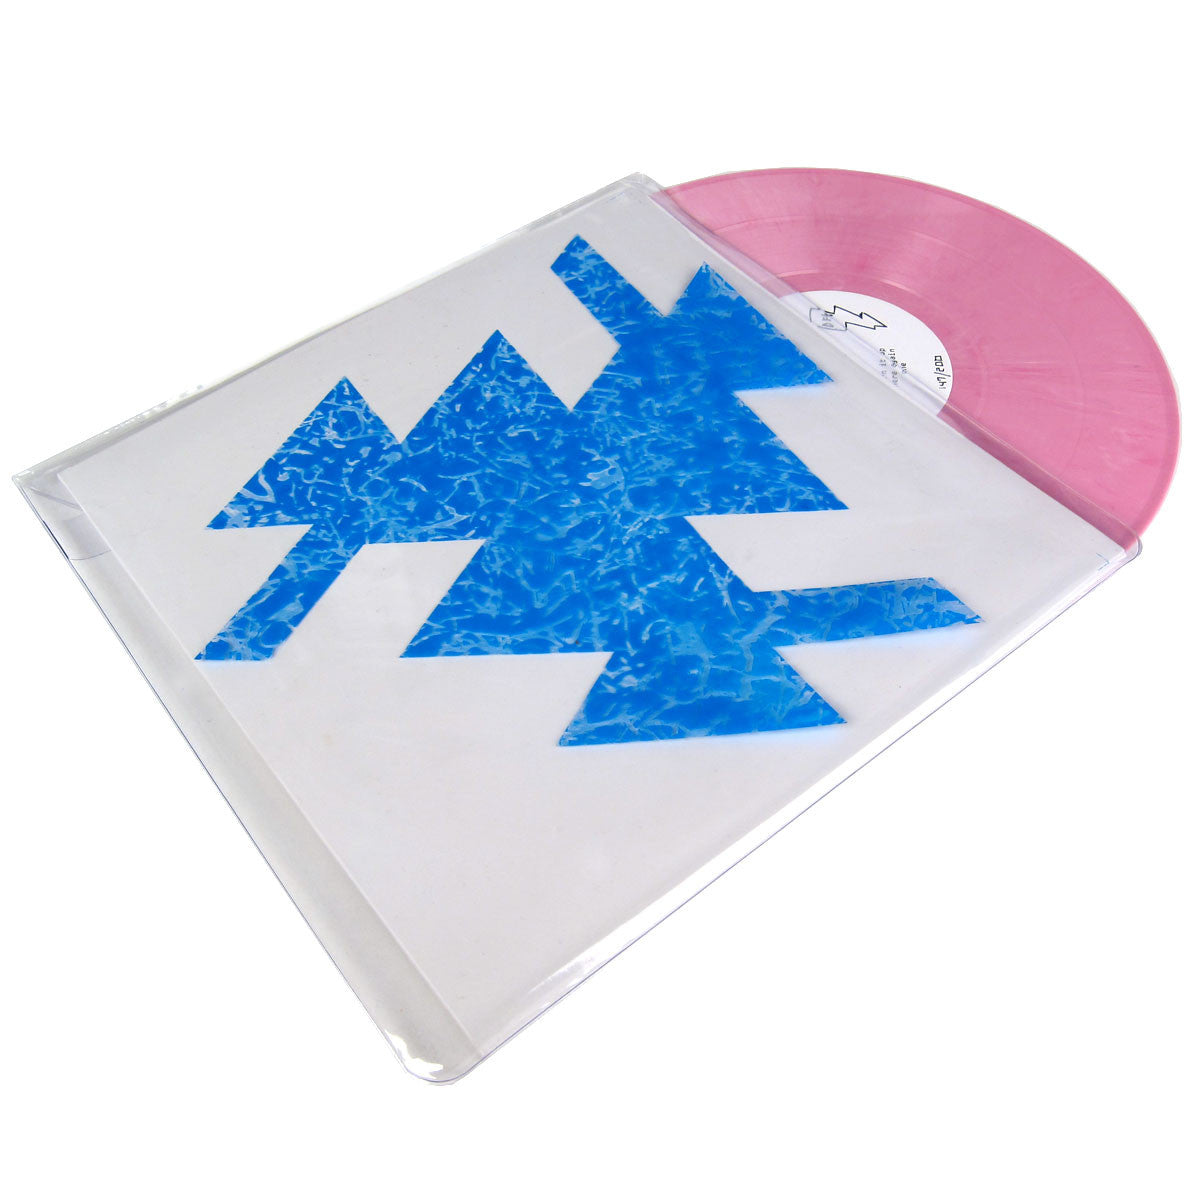 Factory Floor: Factory Floor (Limited White Label Edition, Colored Vinyl, Free MP3) Vinyl 2LP